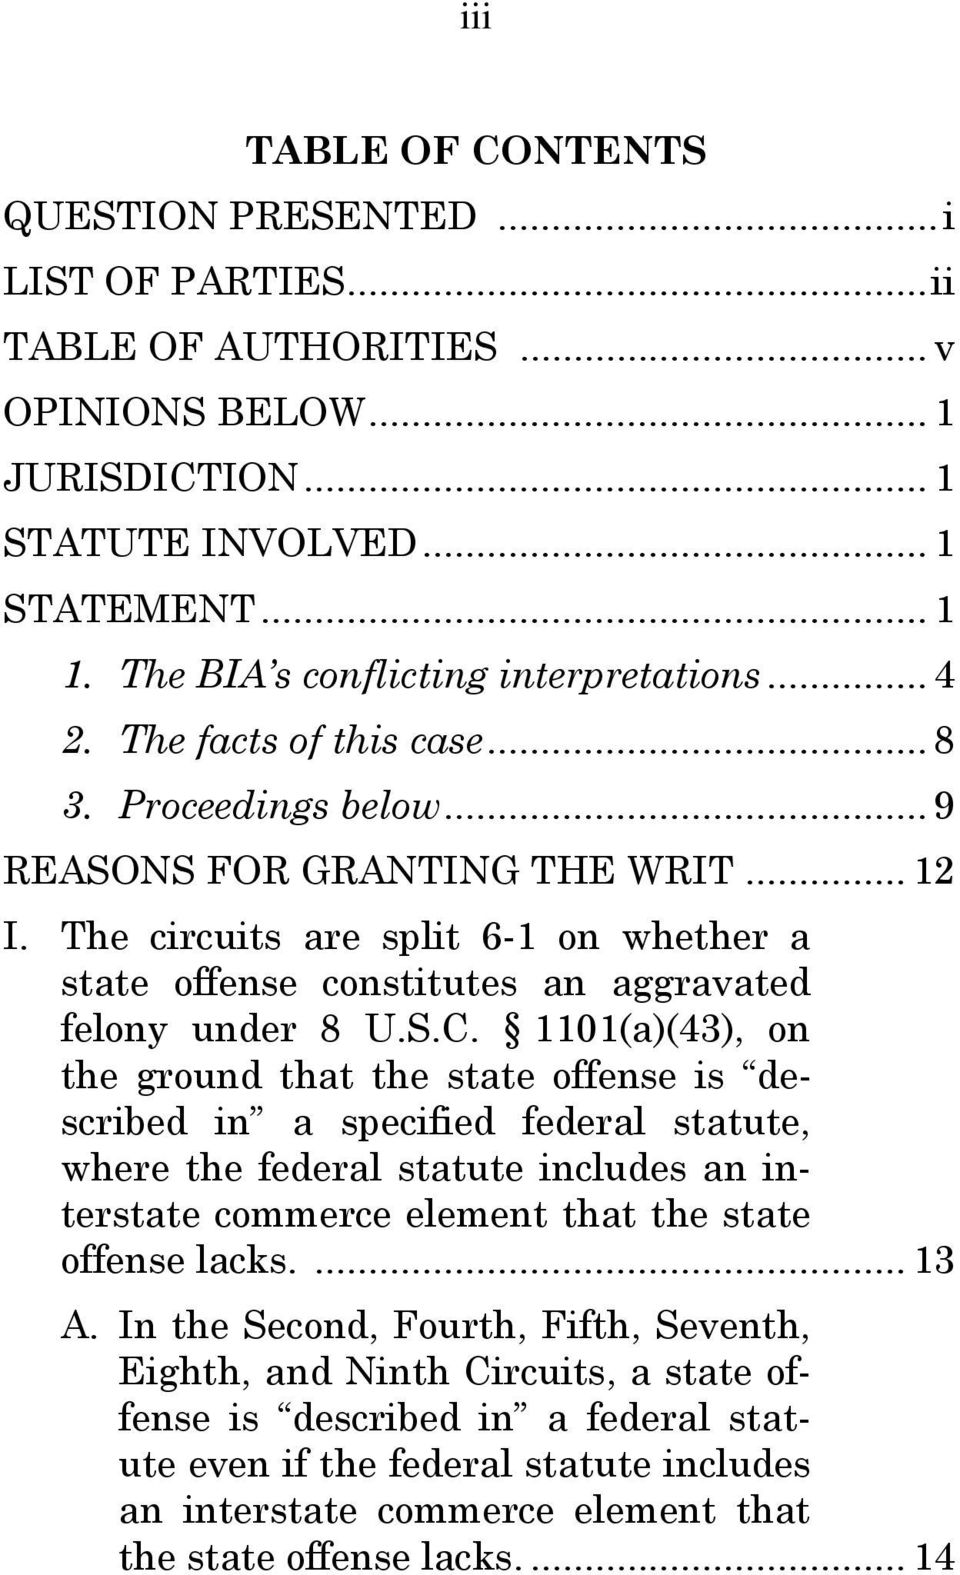 The circuits are split 6-1 on whether a state offense constitutes an aggravated felony under 8 U.S.C.